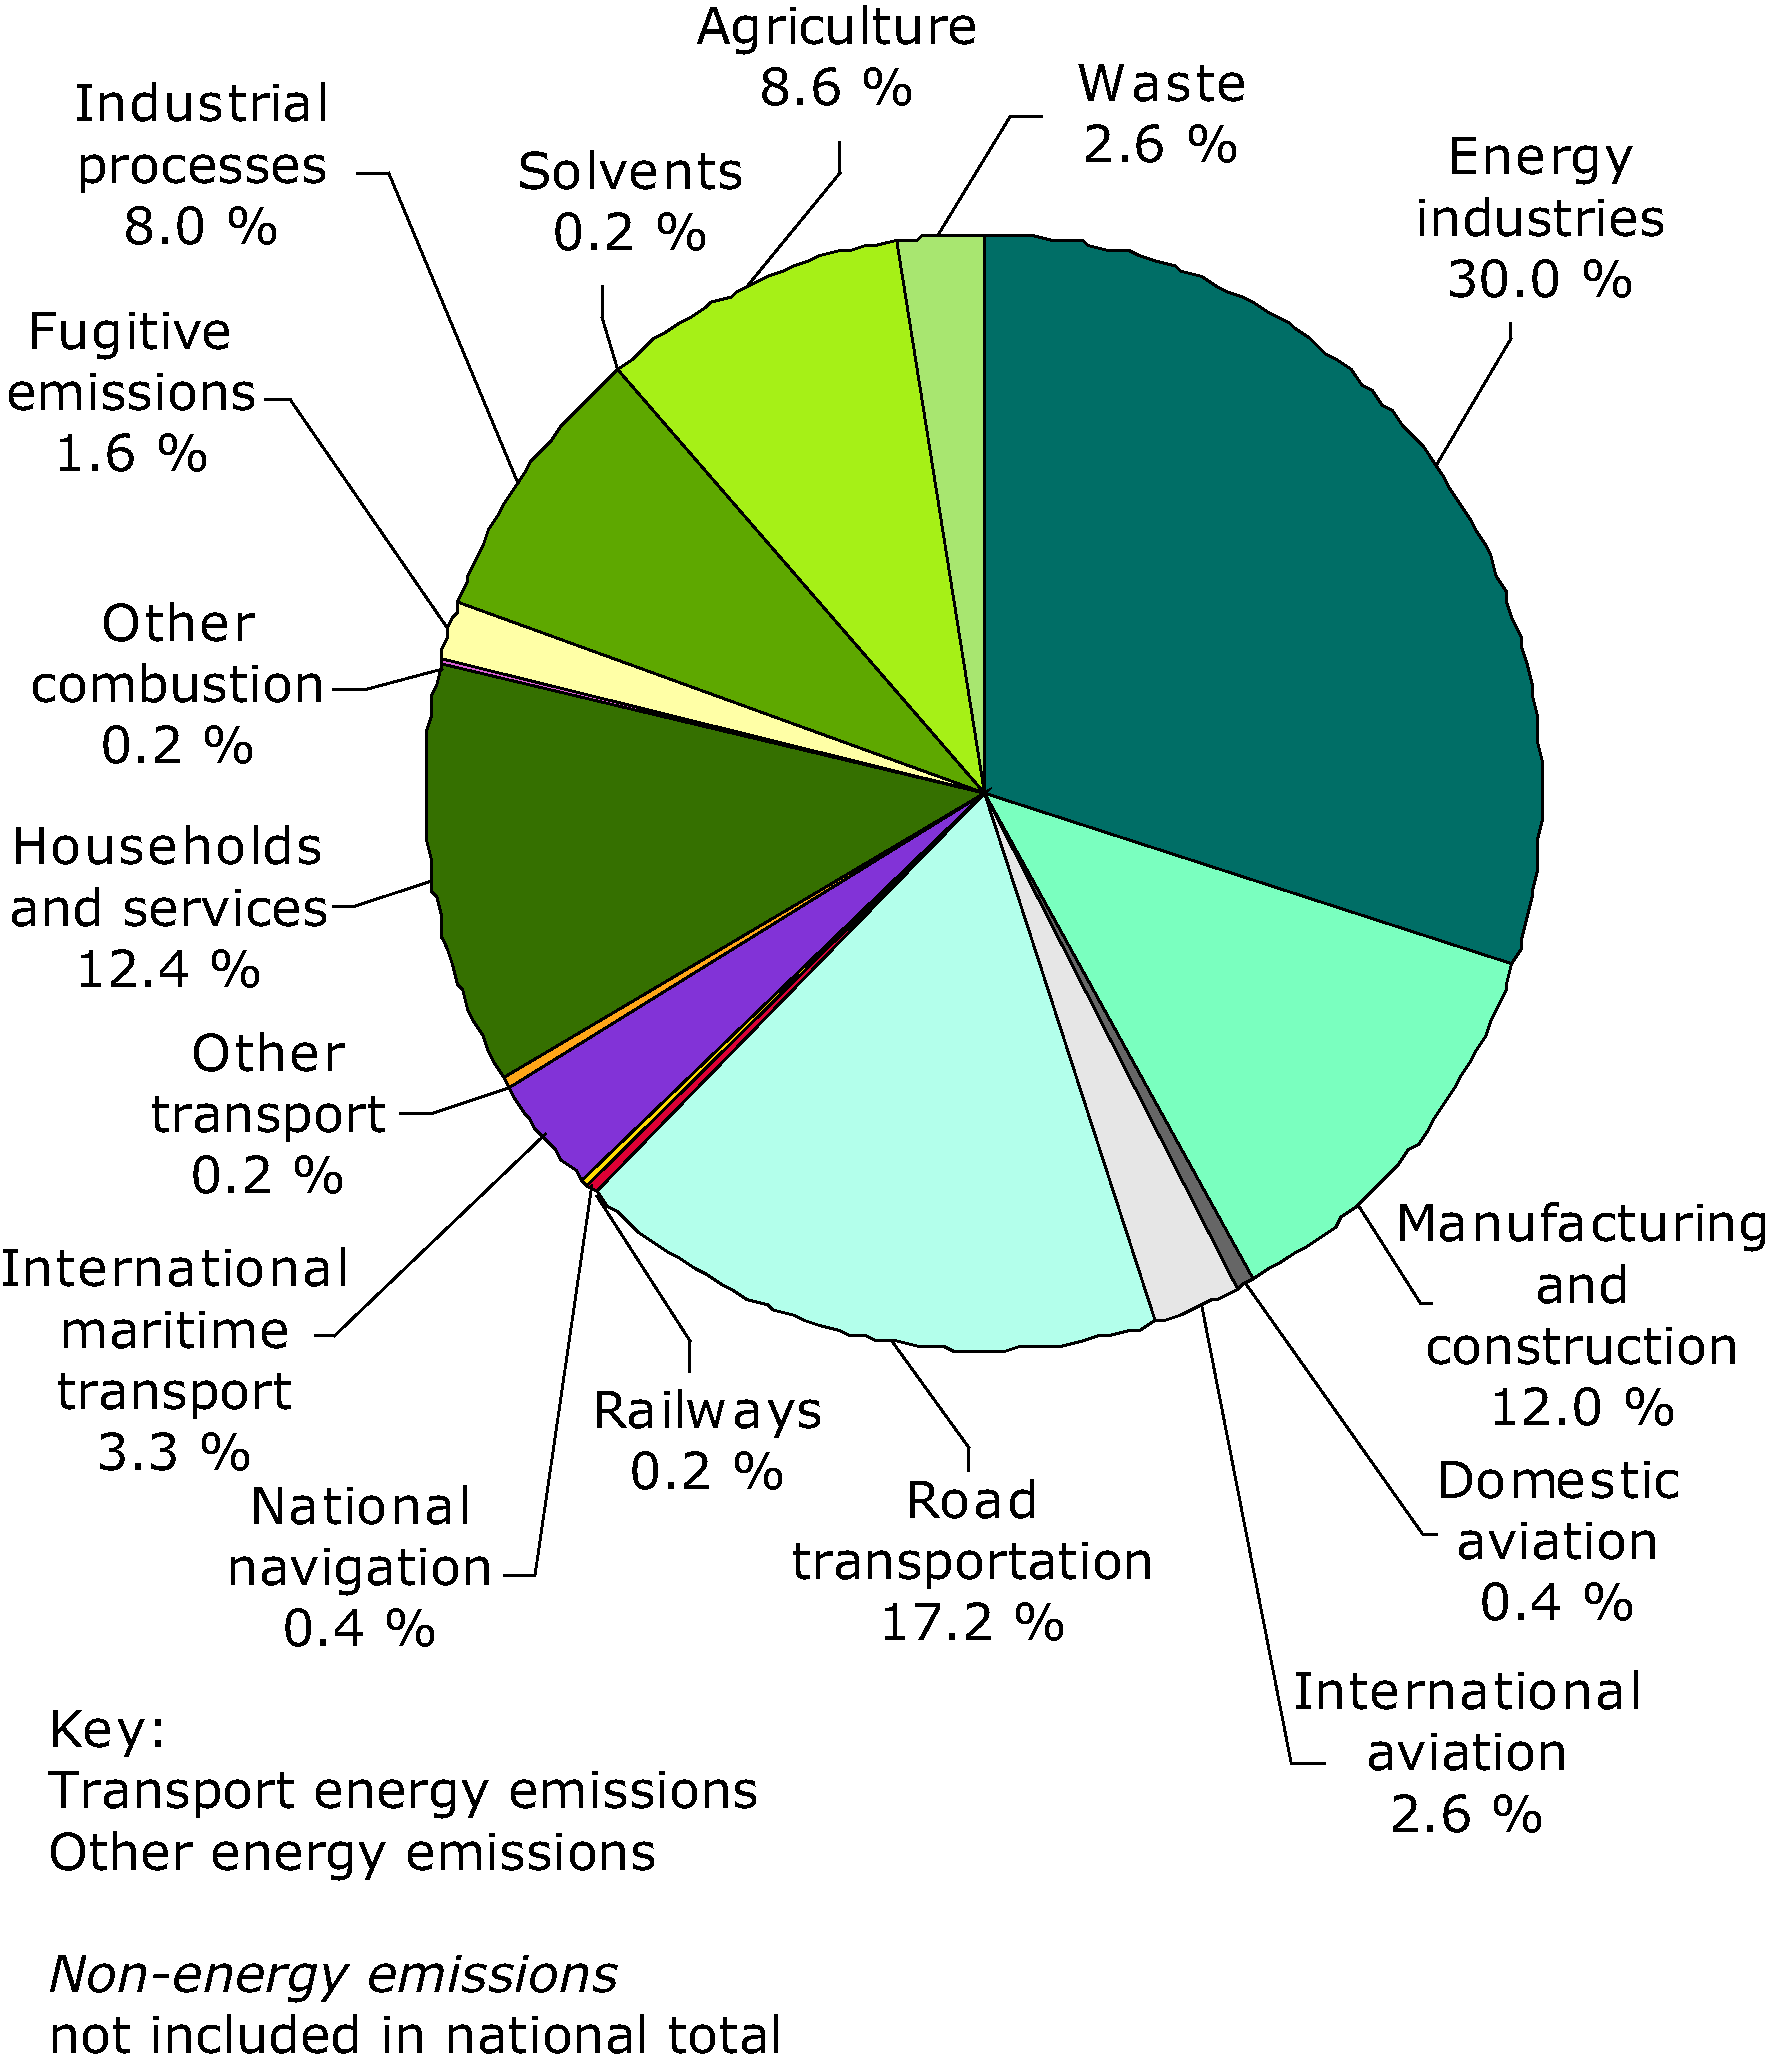 Total greenhouse gas emissions by sector (%) in EU-27, 2007